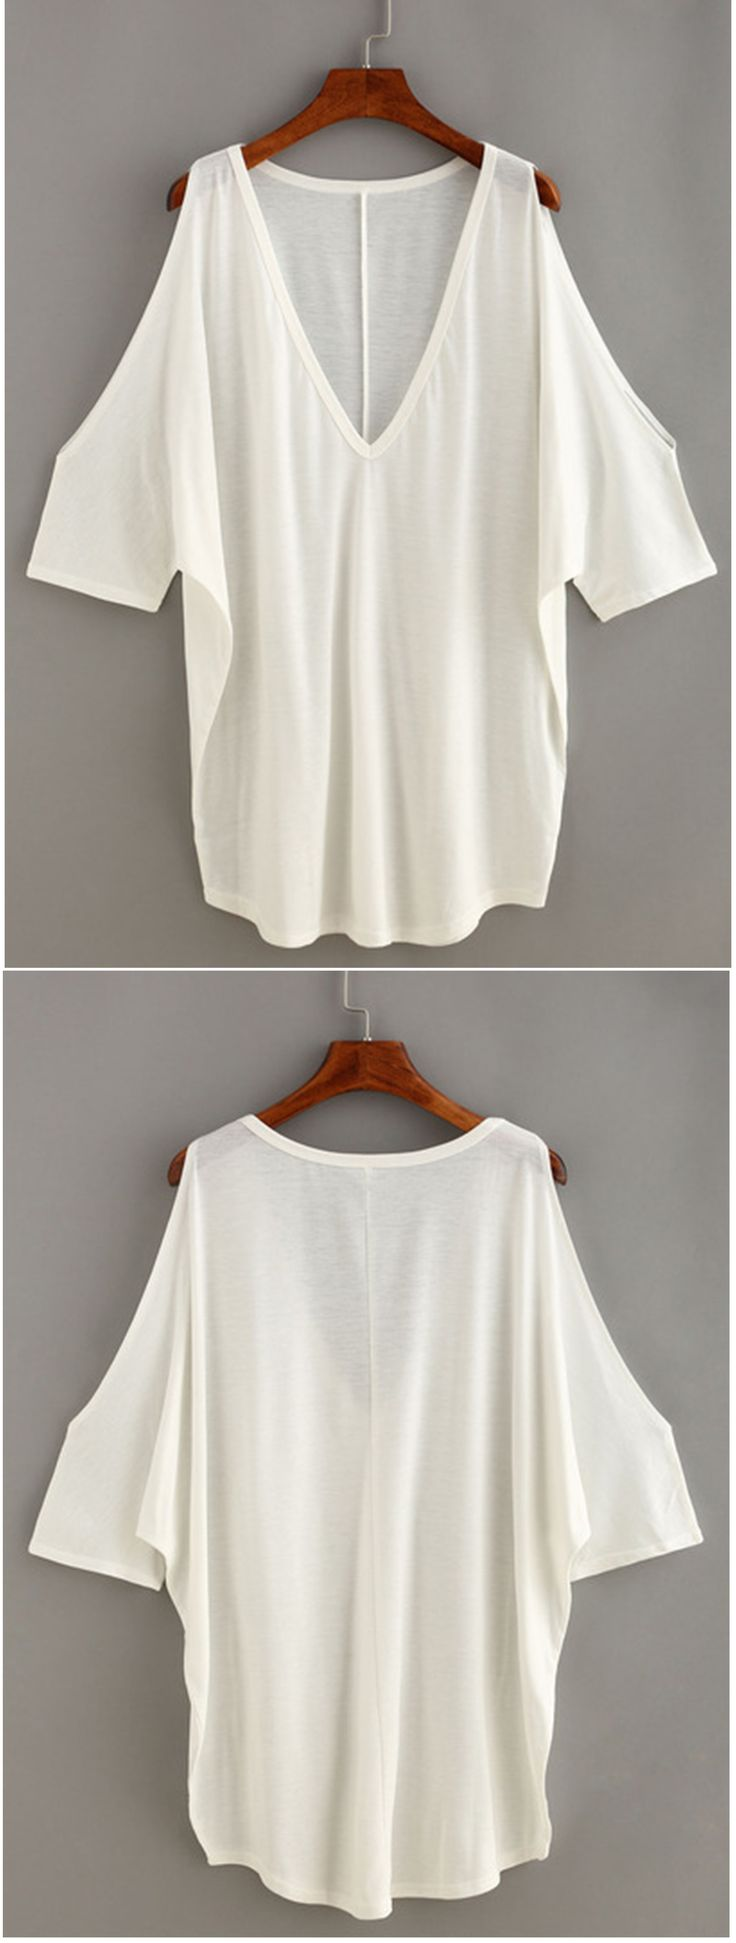 V-Neck Open Shoulder Loose Fit Top. This shirt is great for throwing on, dressing up, and playing around with different styles! It's so versatile and comfortable.